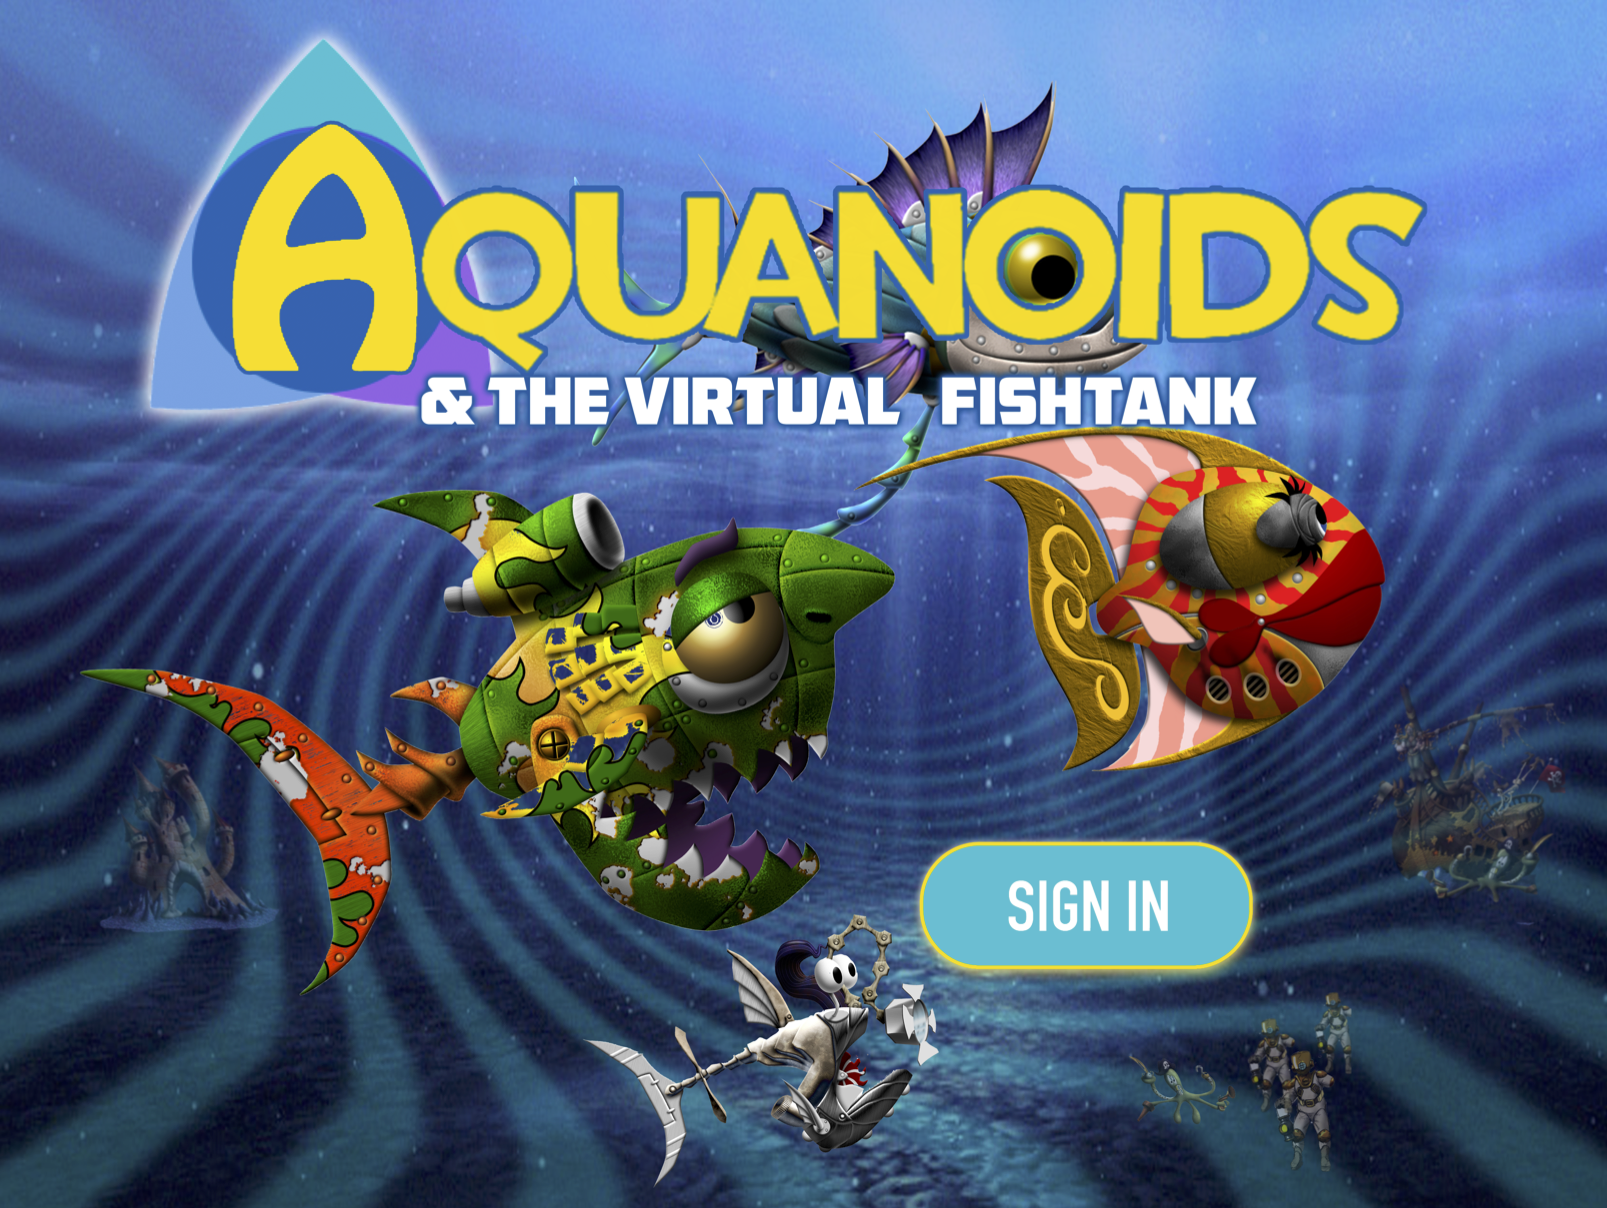 Aquanoids - A Toy-to-Life mobile web franchisefor kids